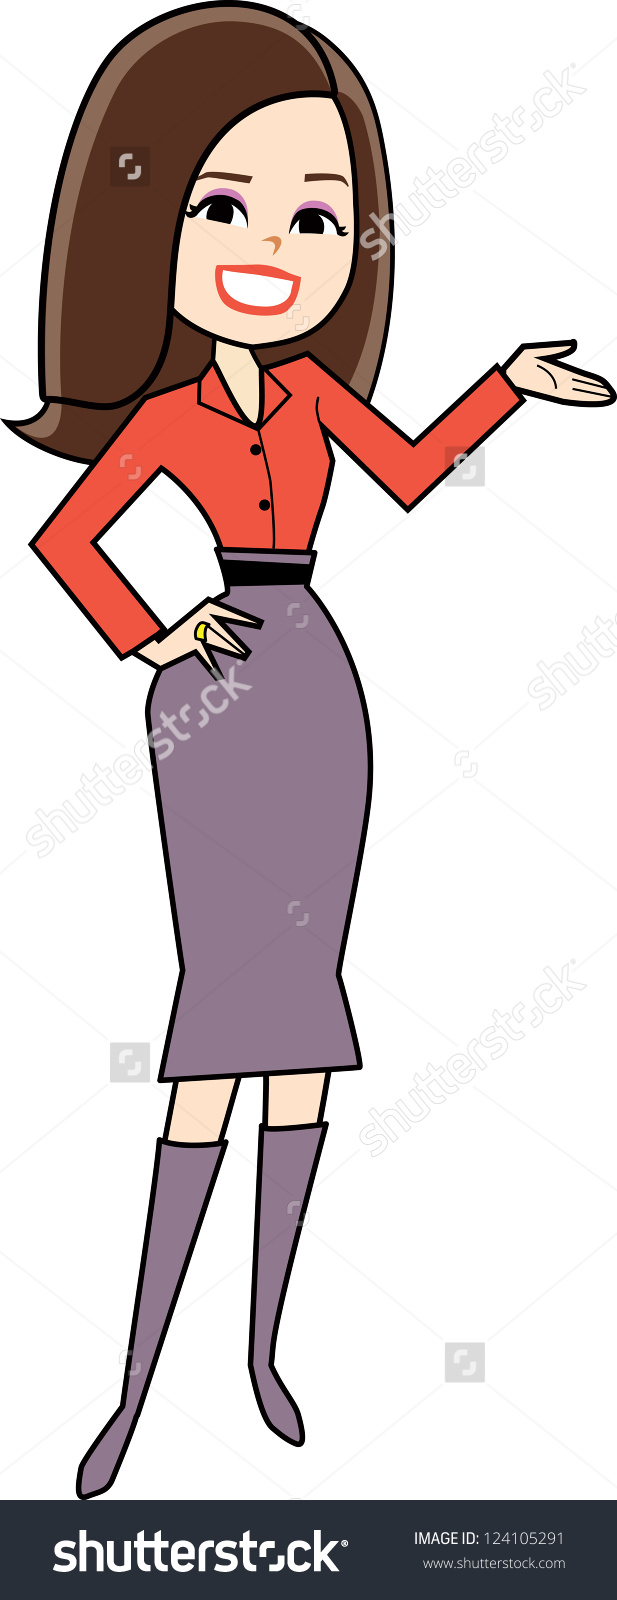 Woman clipart #10, Download drawings